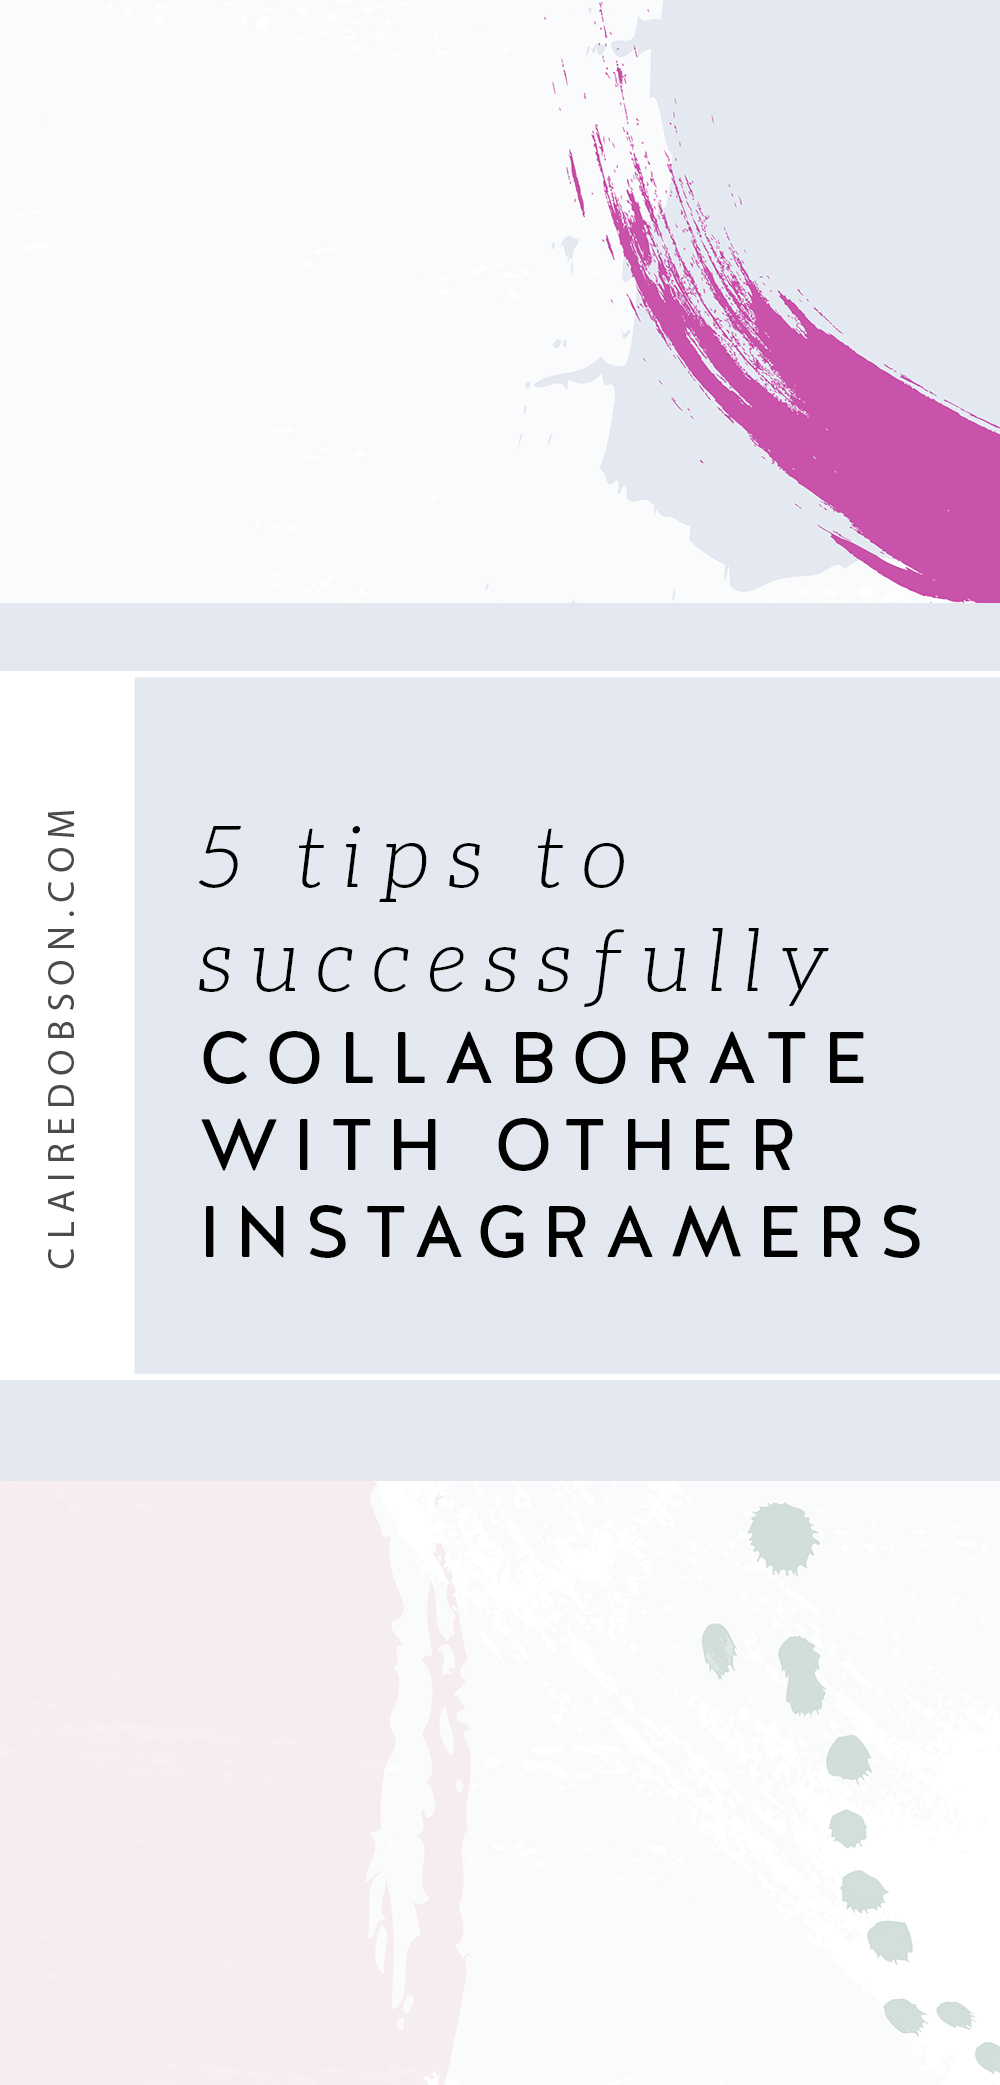 Learn some tried and true tips to successfully collaborate with other #bloggers and Instagram #influencers to grow your influencers and Instagram followers organically. I have used these to grow my blog #instagram#pinterest and #socialmedia accounts as well as my #creativebusiness to get brands to work with me.